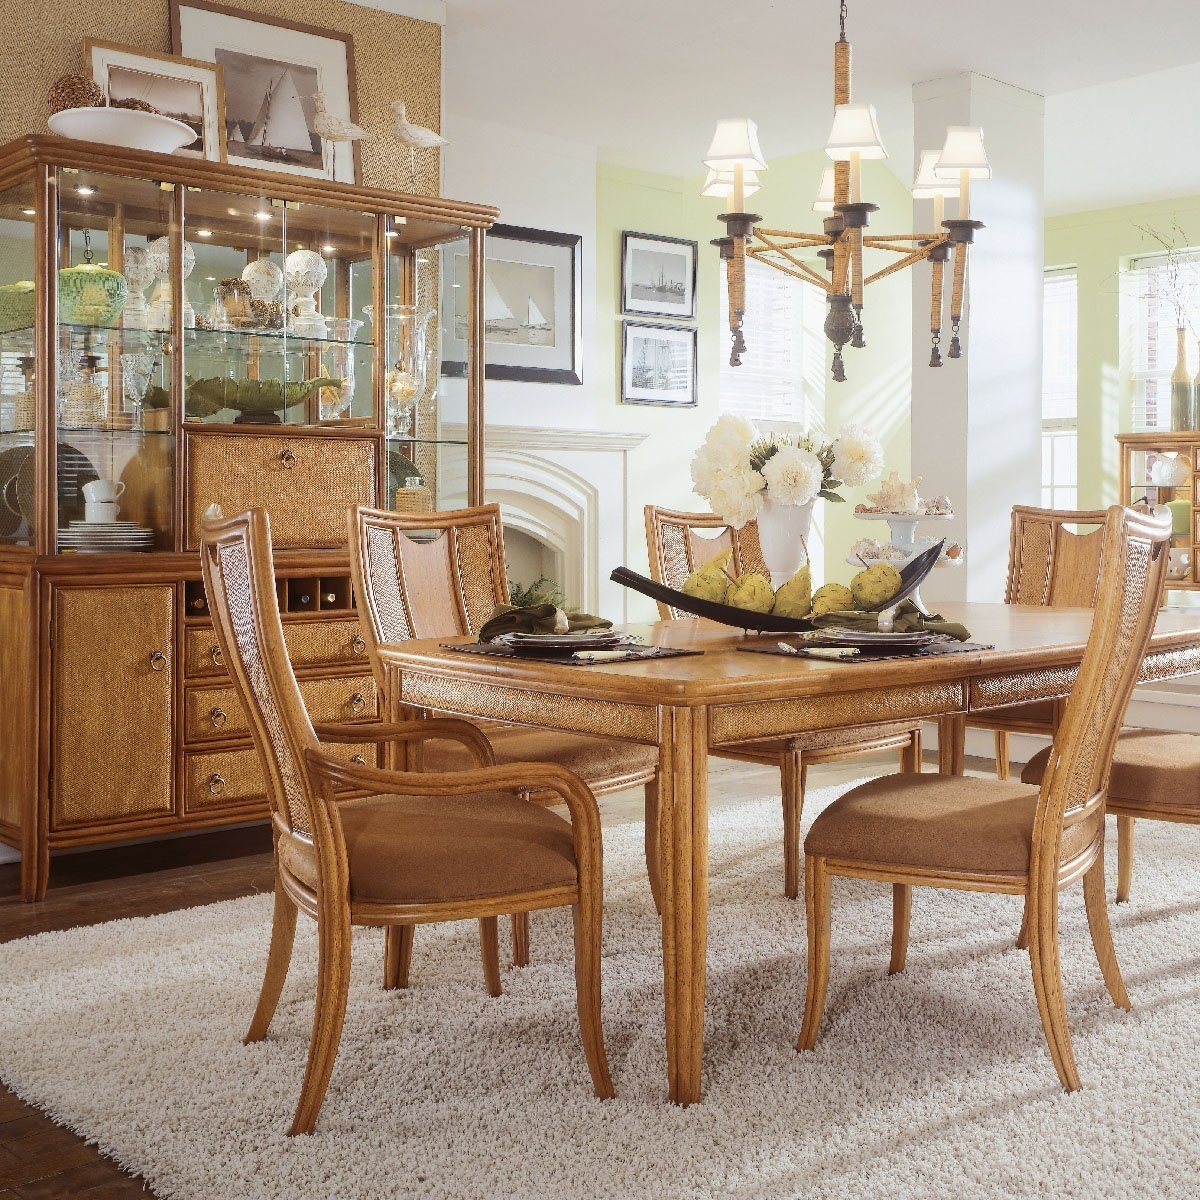 Simple Dining Room Design: Decorating Ideas For Dining Room Tables Simple Ideas Full